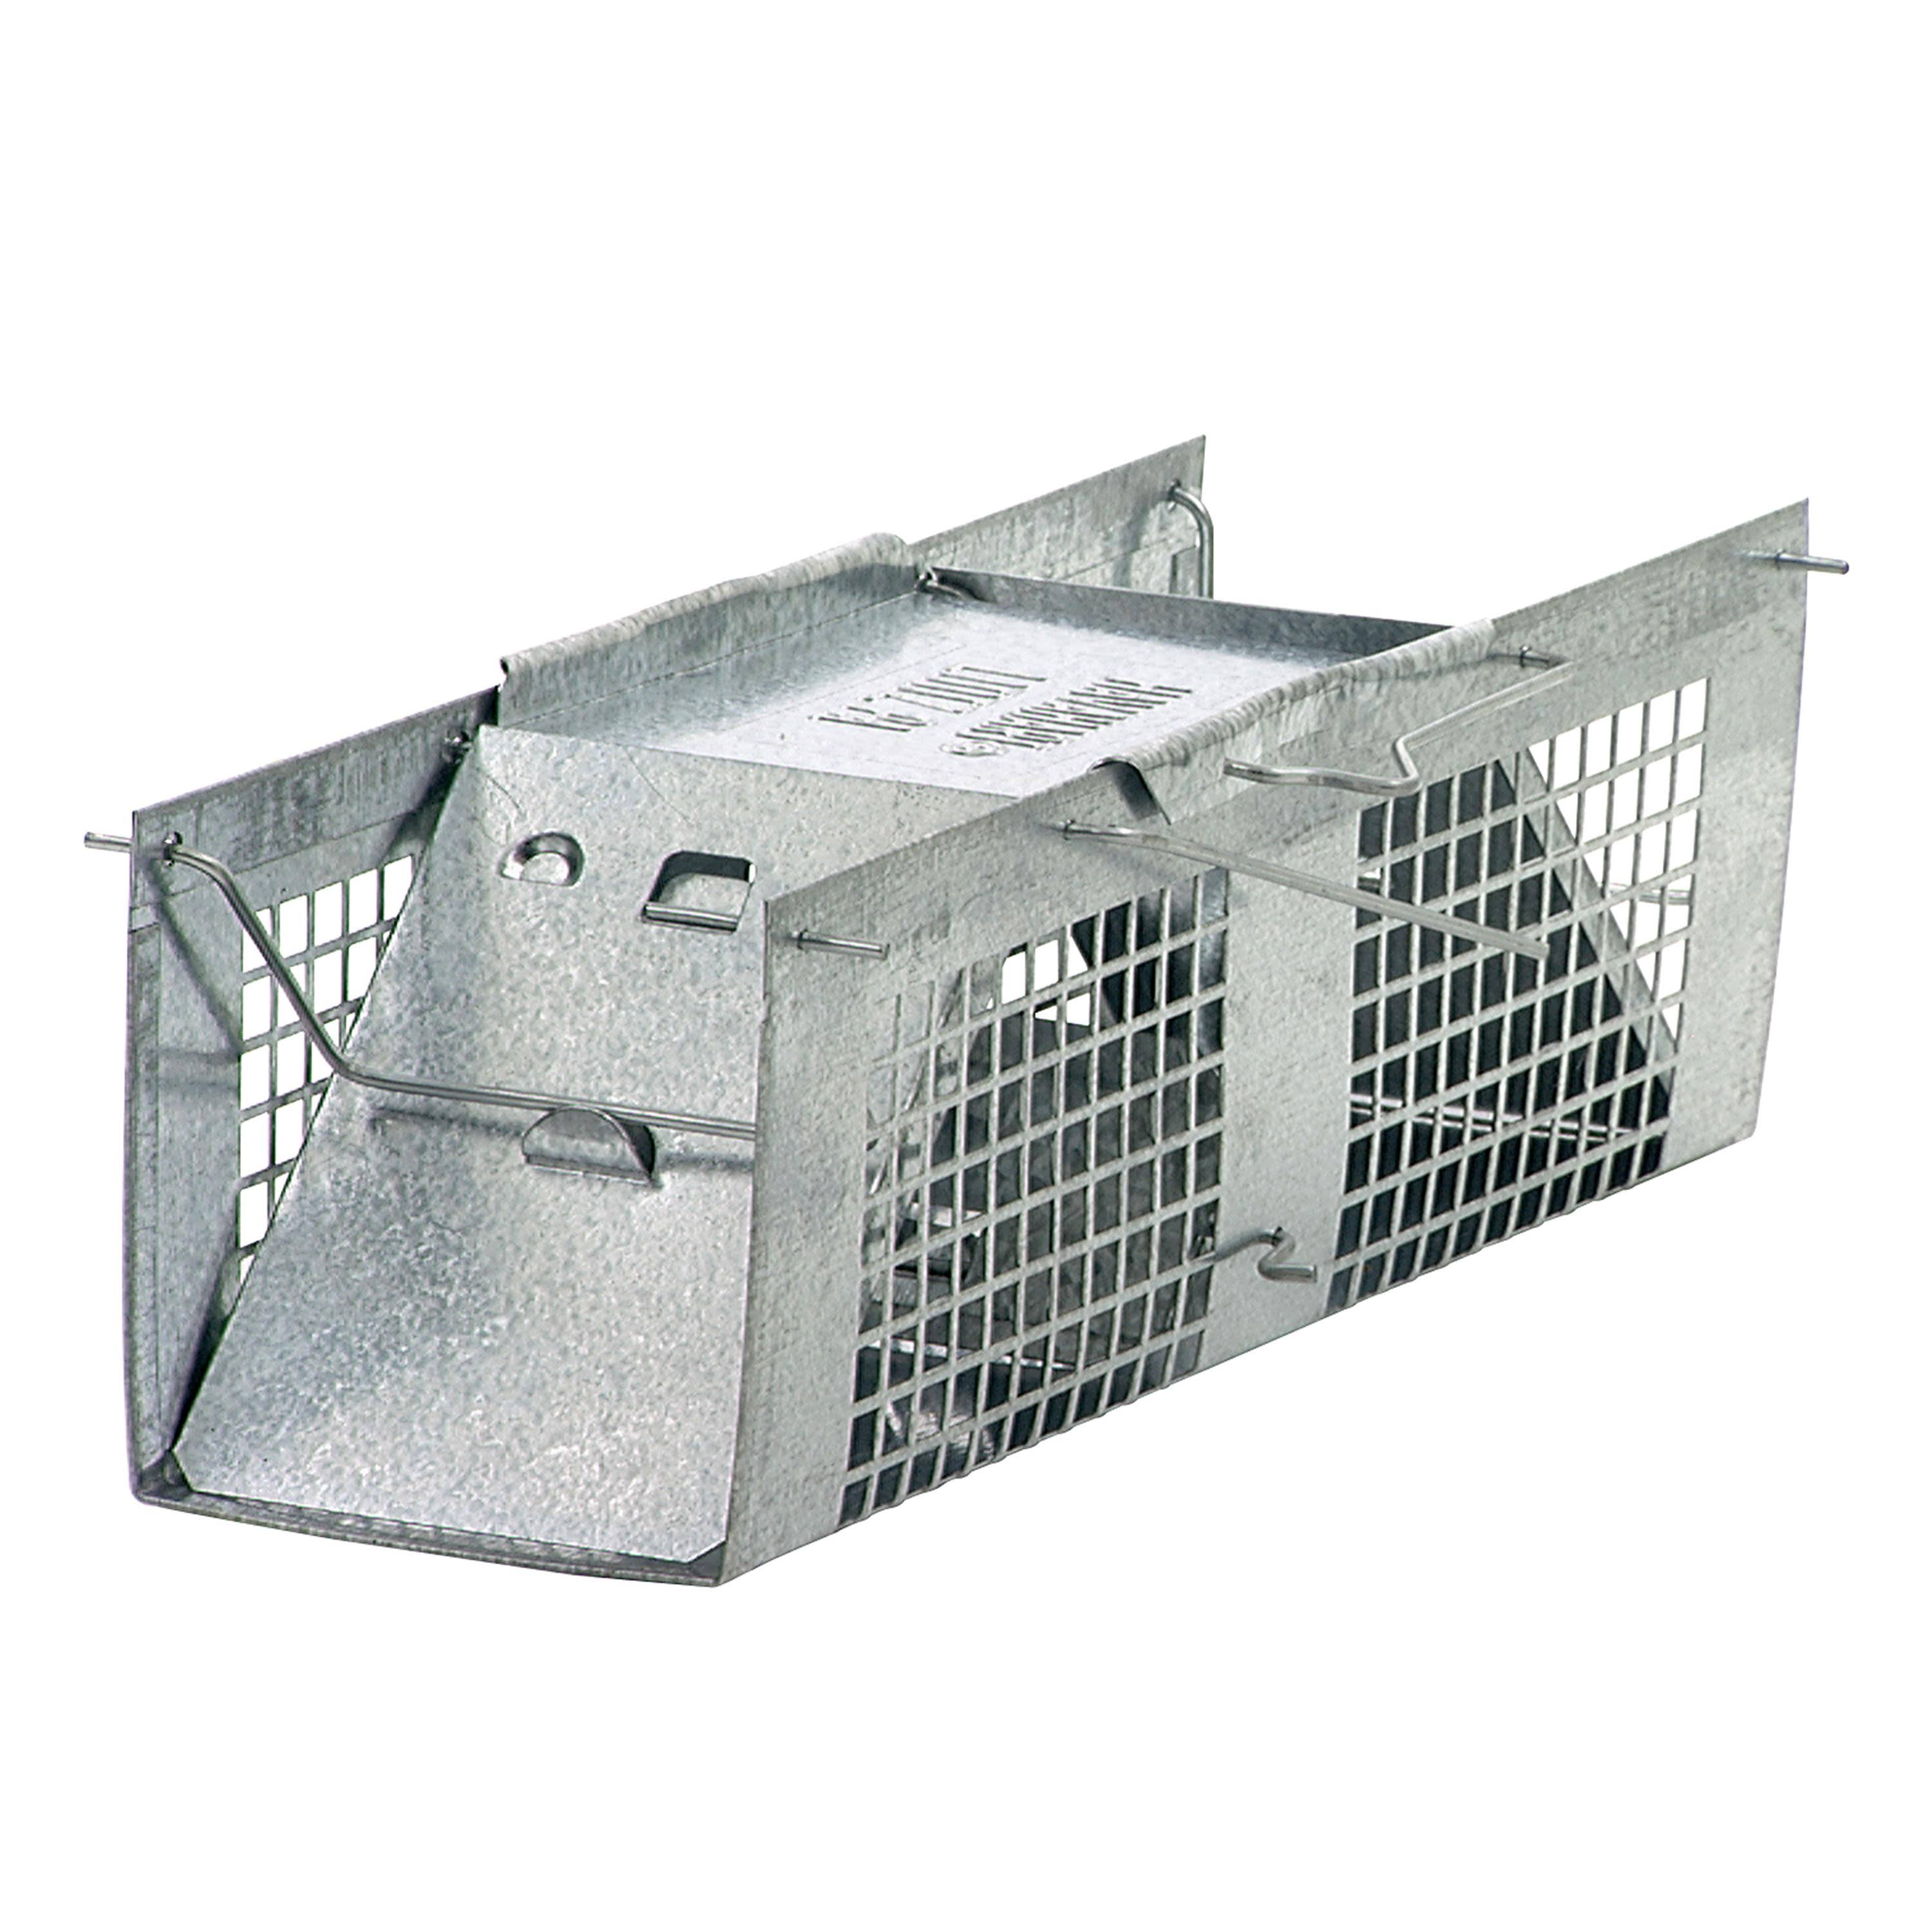 Havahart X-Small 2-Door Live Animal Cage Trap